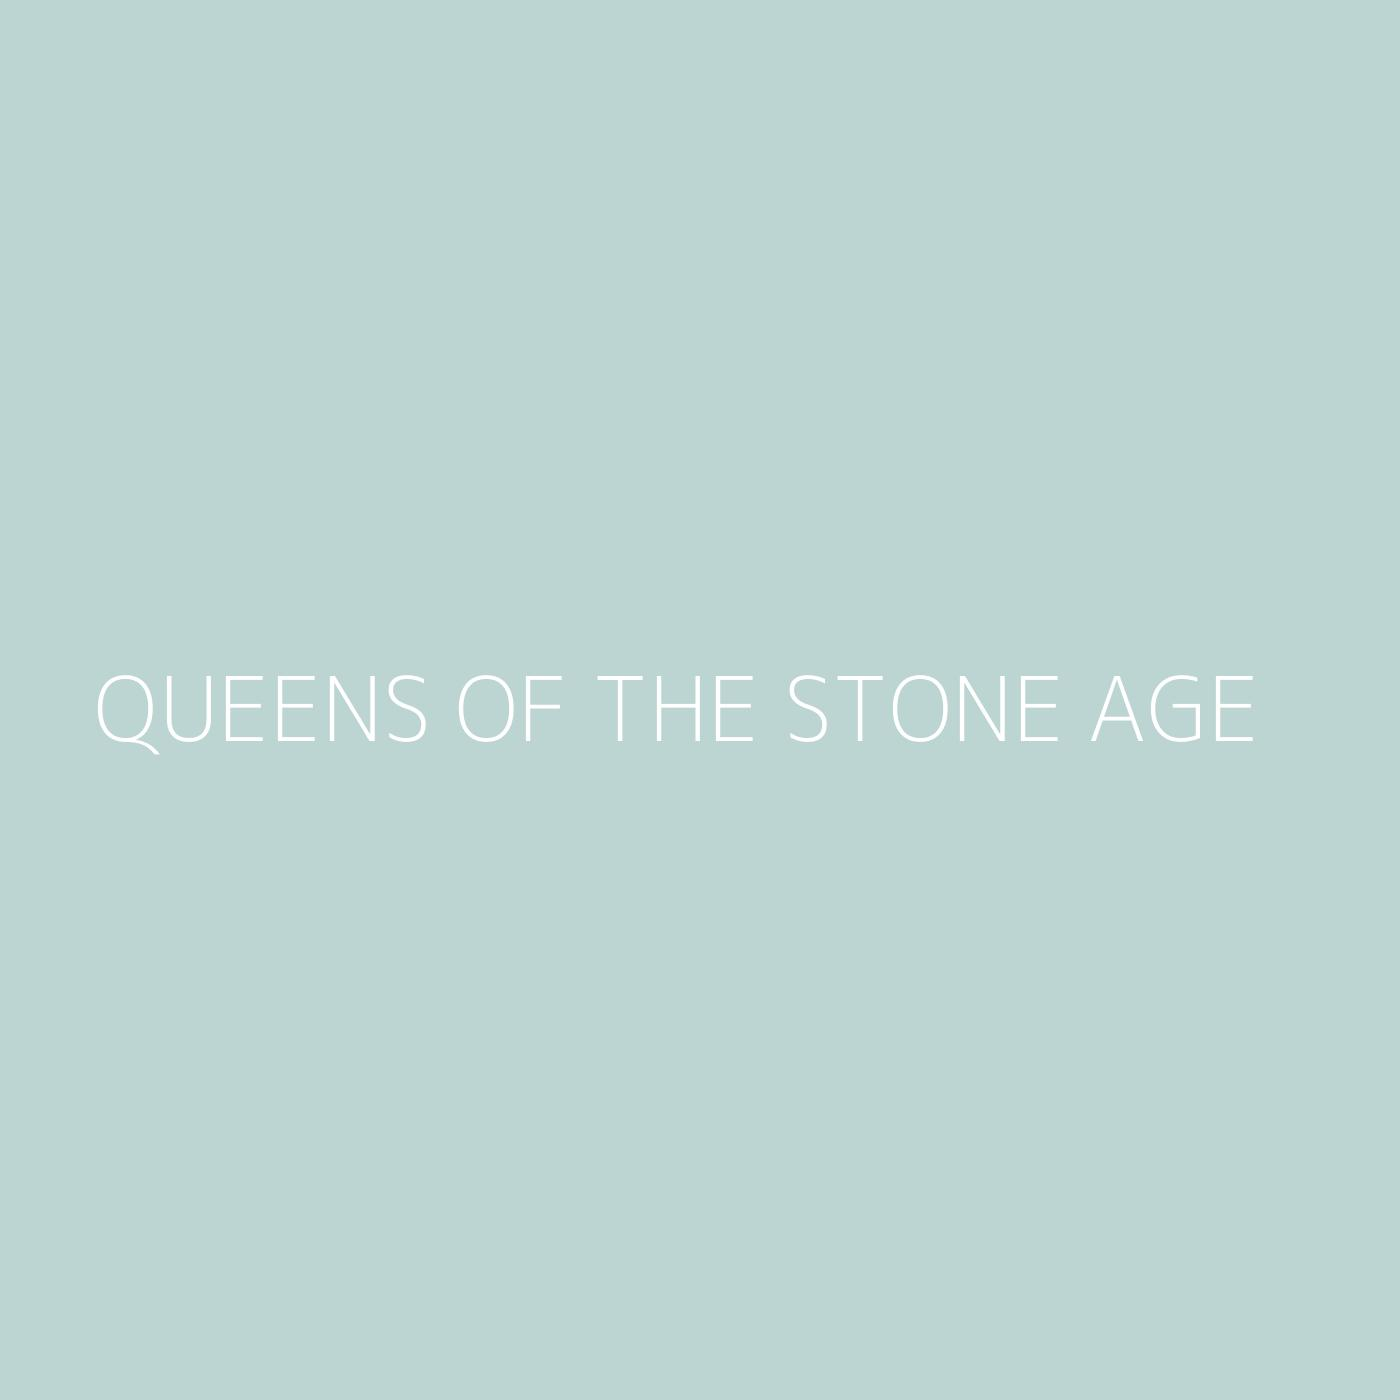 Queens of the Stone Age Playlist Artwork